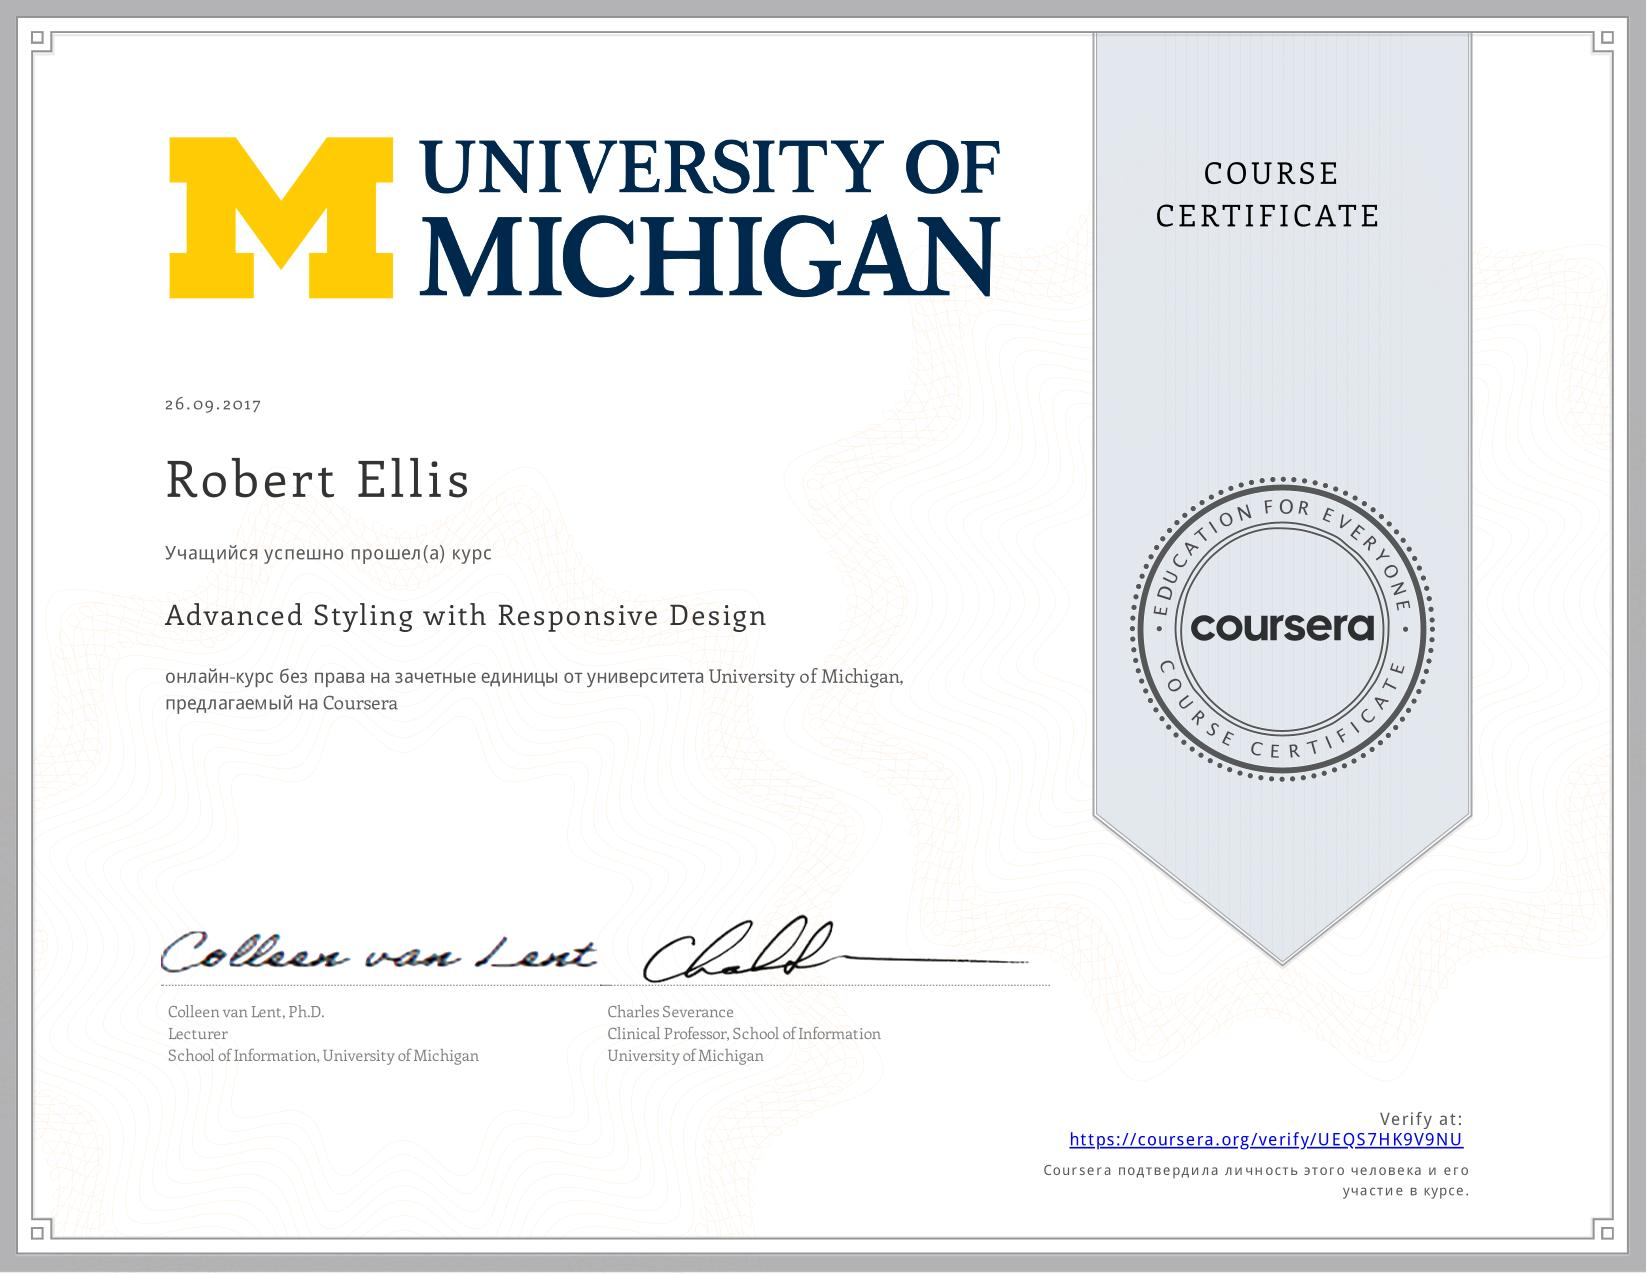 View certificate for Robert Ellis, Advanced Styling with Responsive Design, an online non-credit course authorized by University of Michigan and offered through Coursera